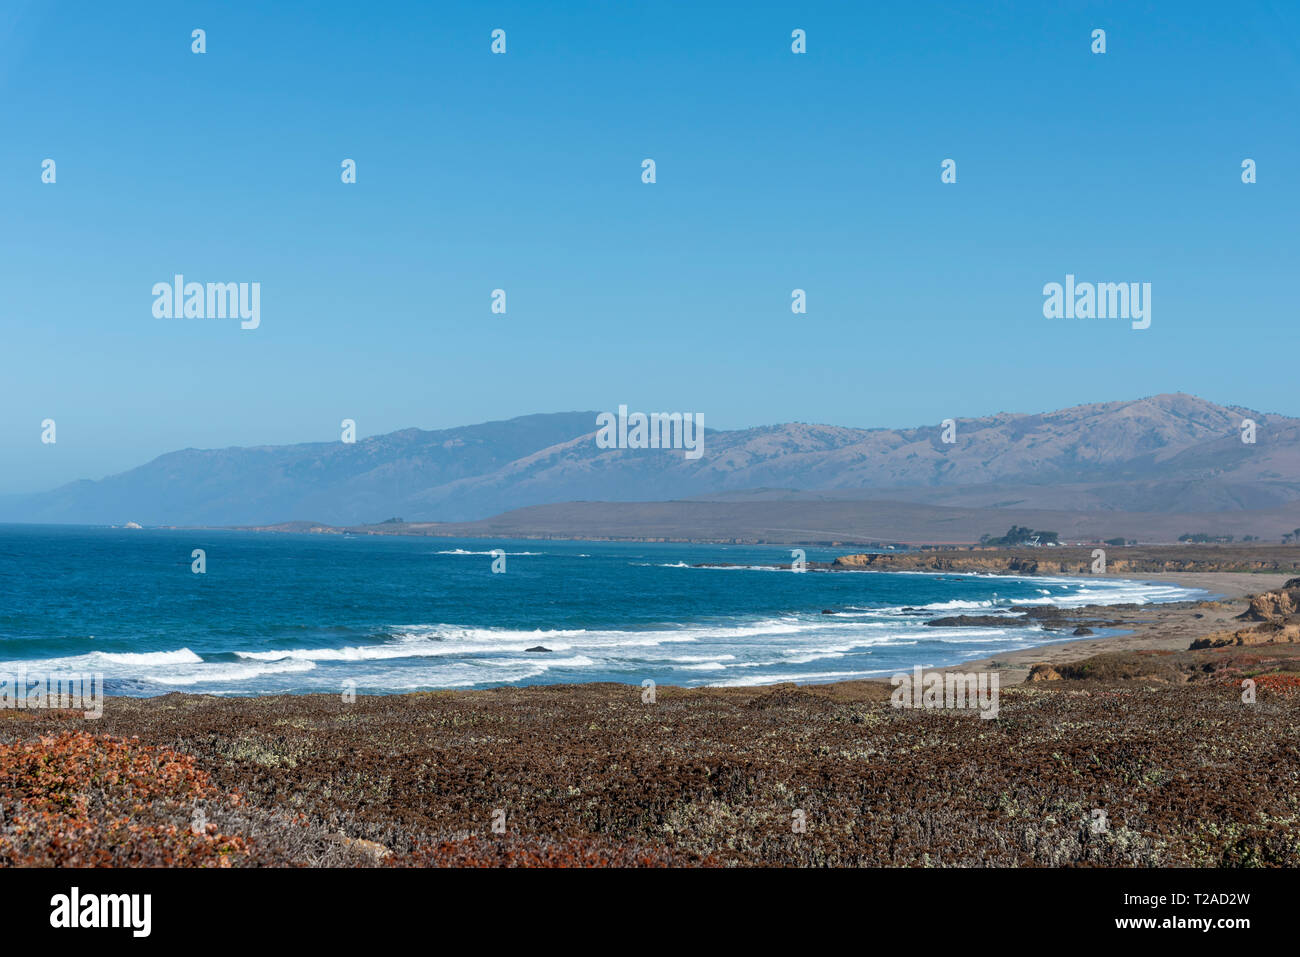 Dead flower fields overlooking blue ocean with white waves breaking onto shore under bright blue sky. - Stock Image